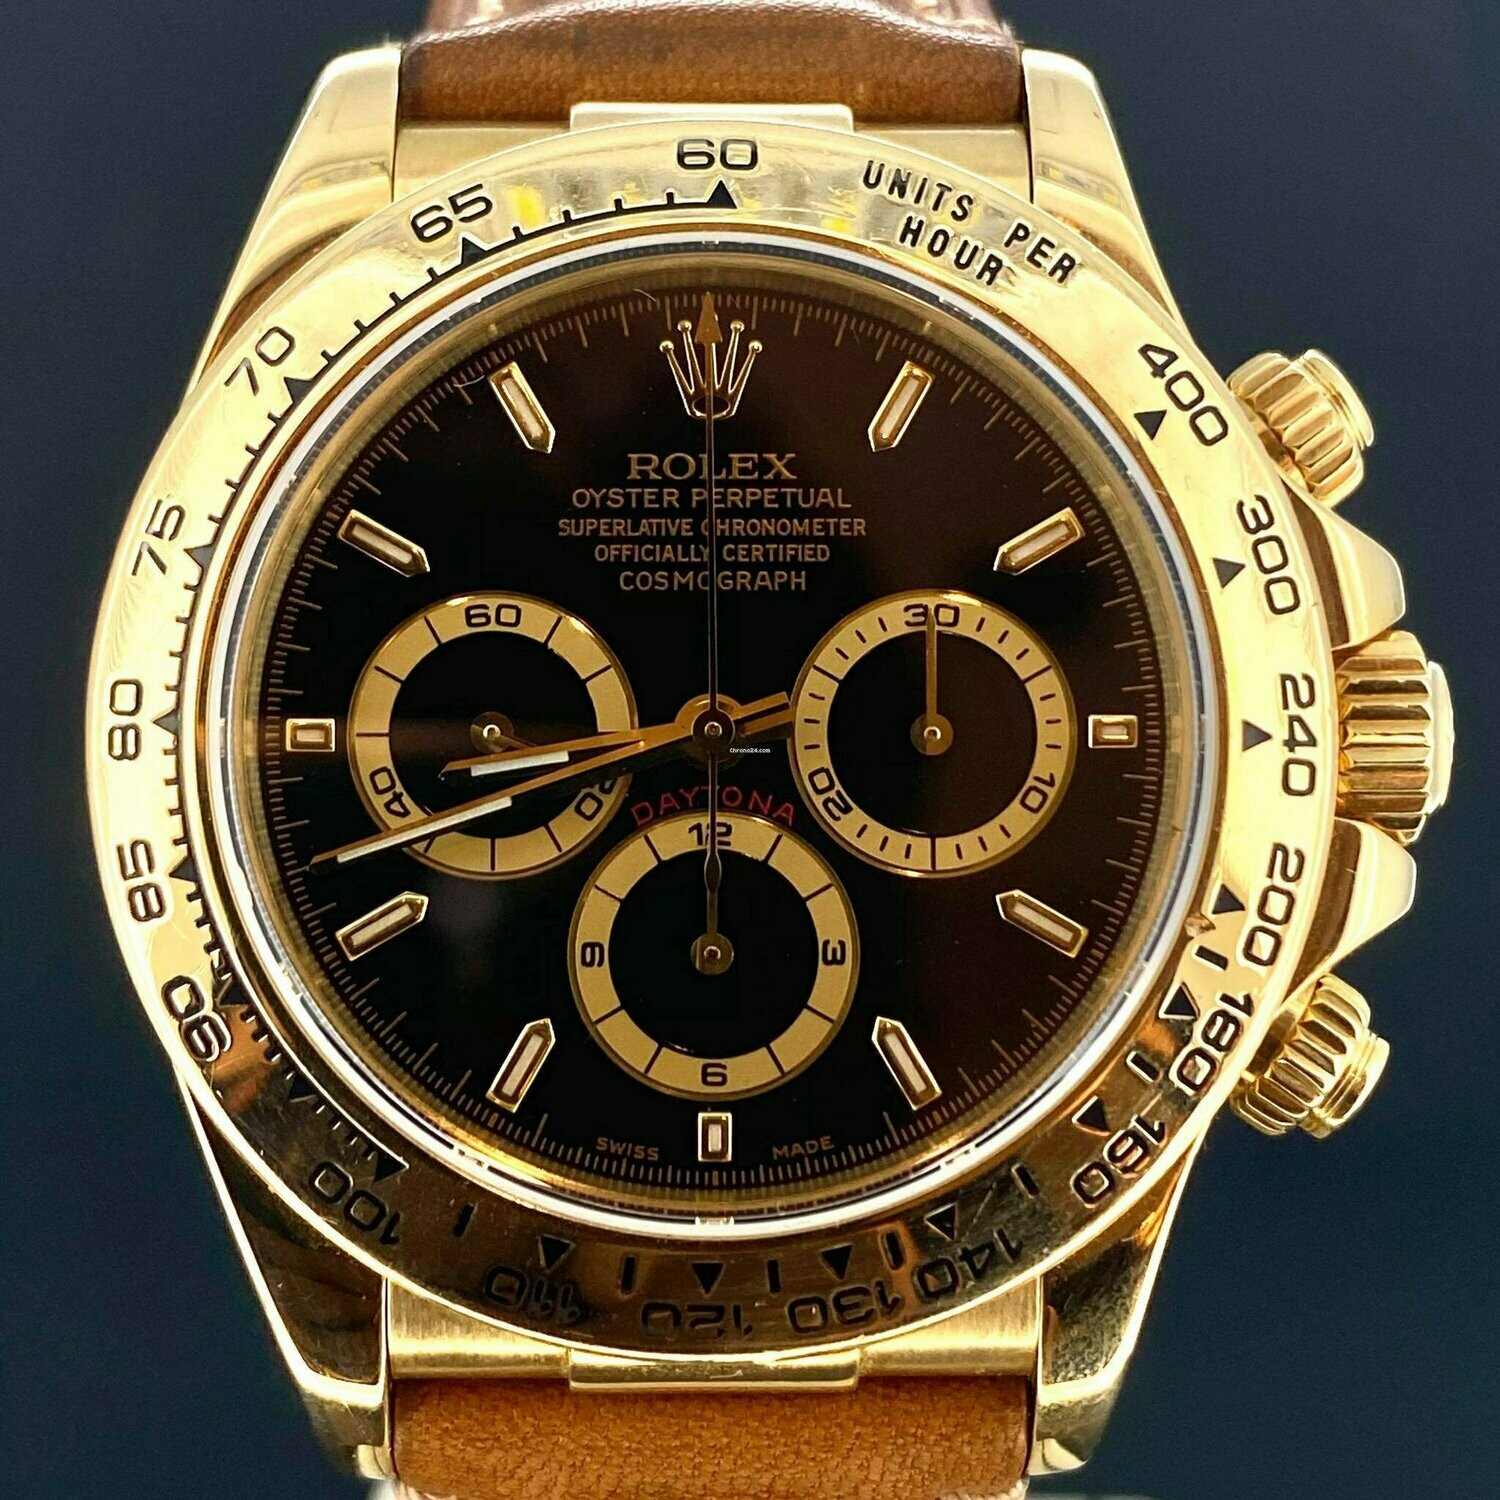 Rolex Daytona Zenith Chronograph Black Dial 40MM 18K Yellow Gold Watch Box Only Mint Condition